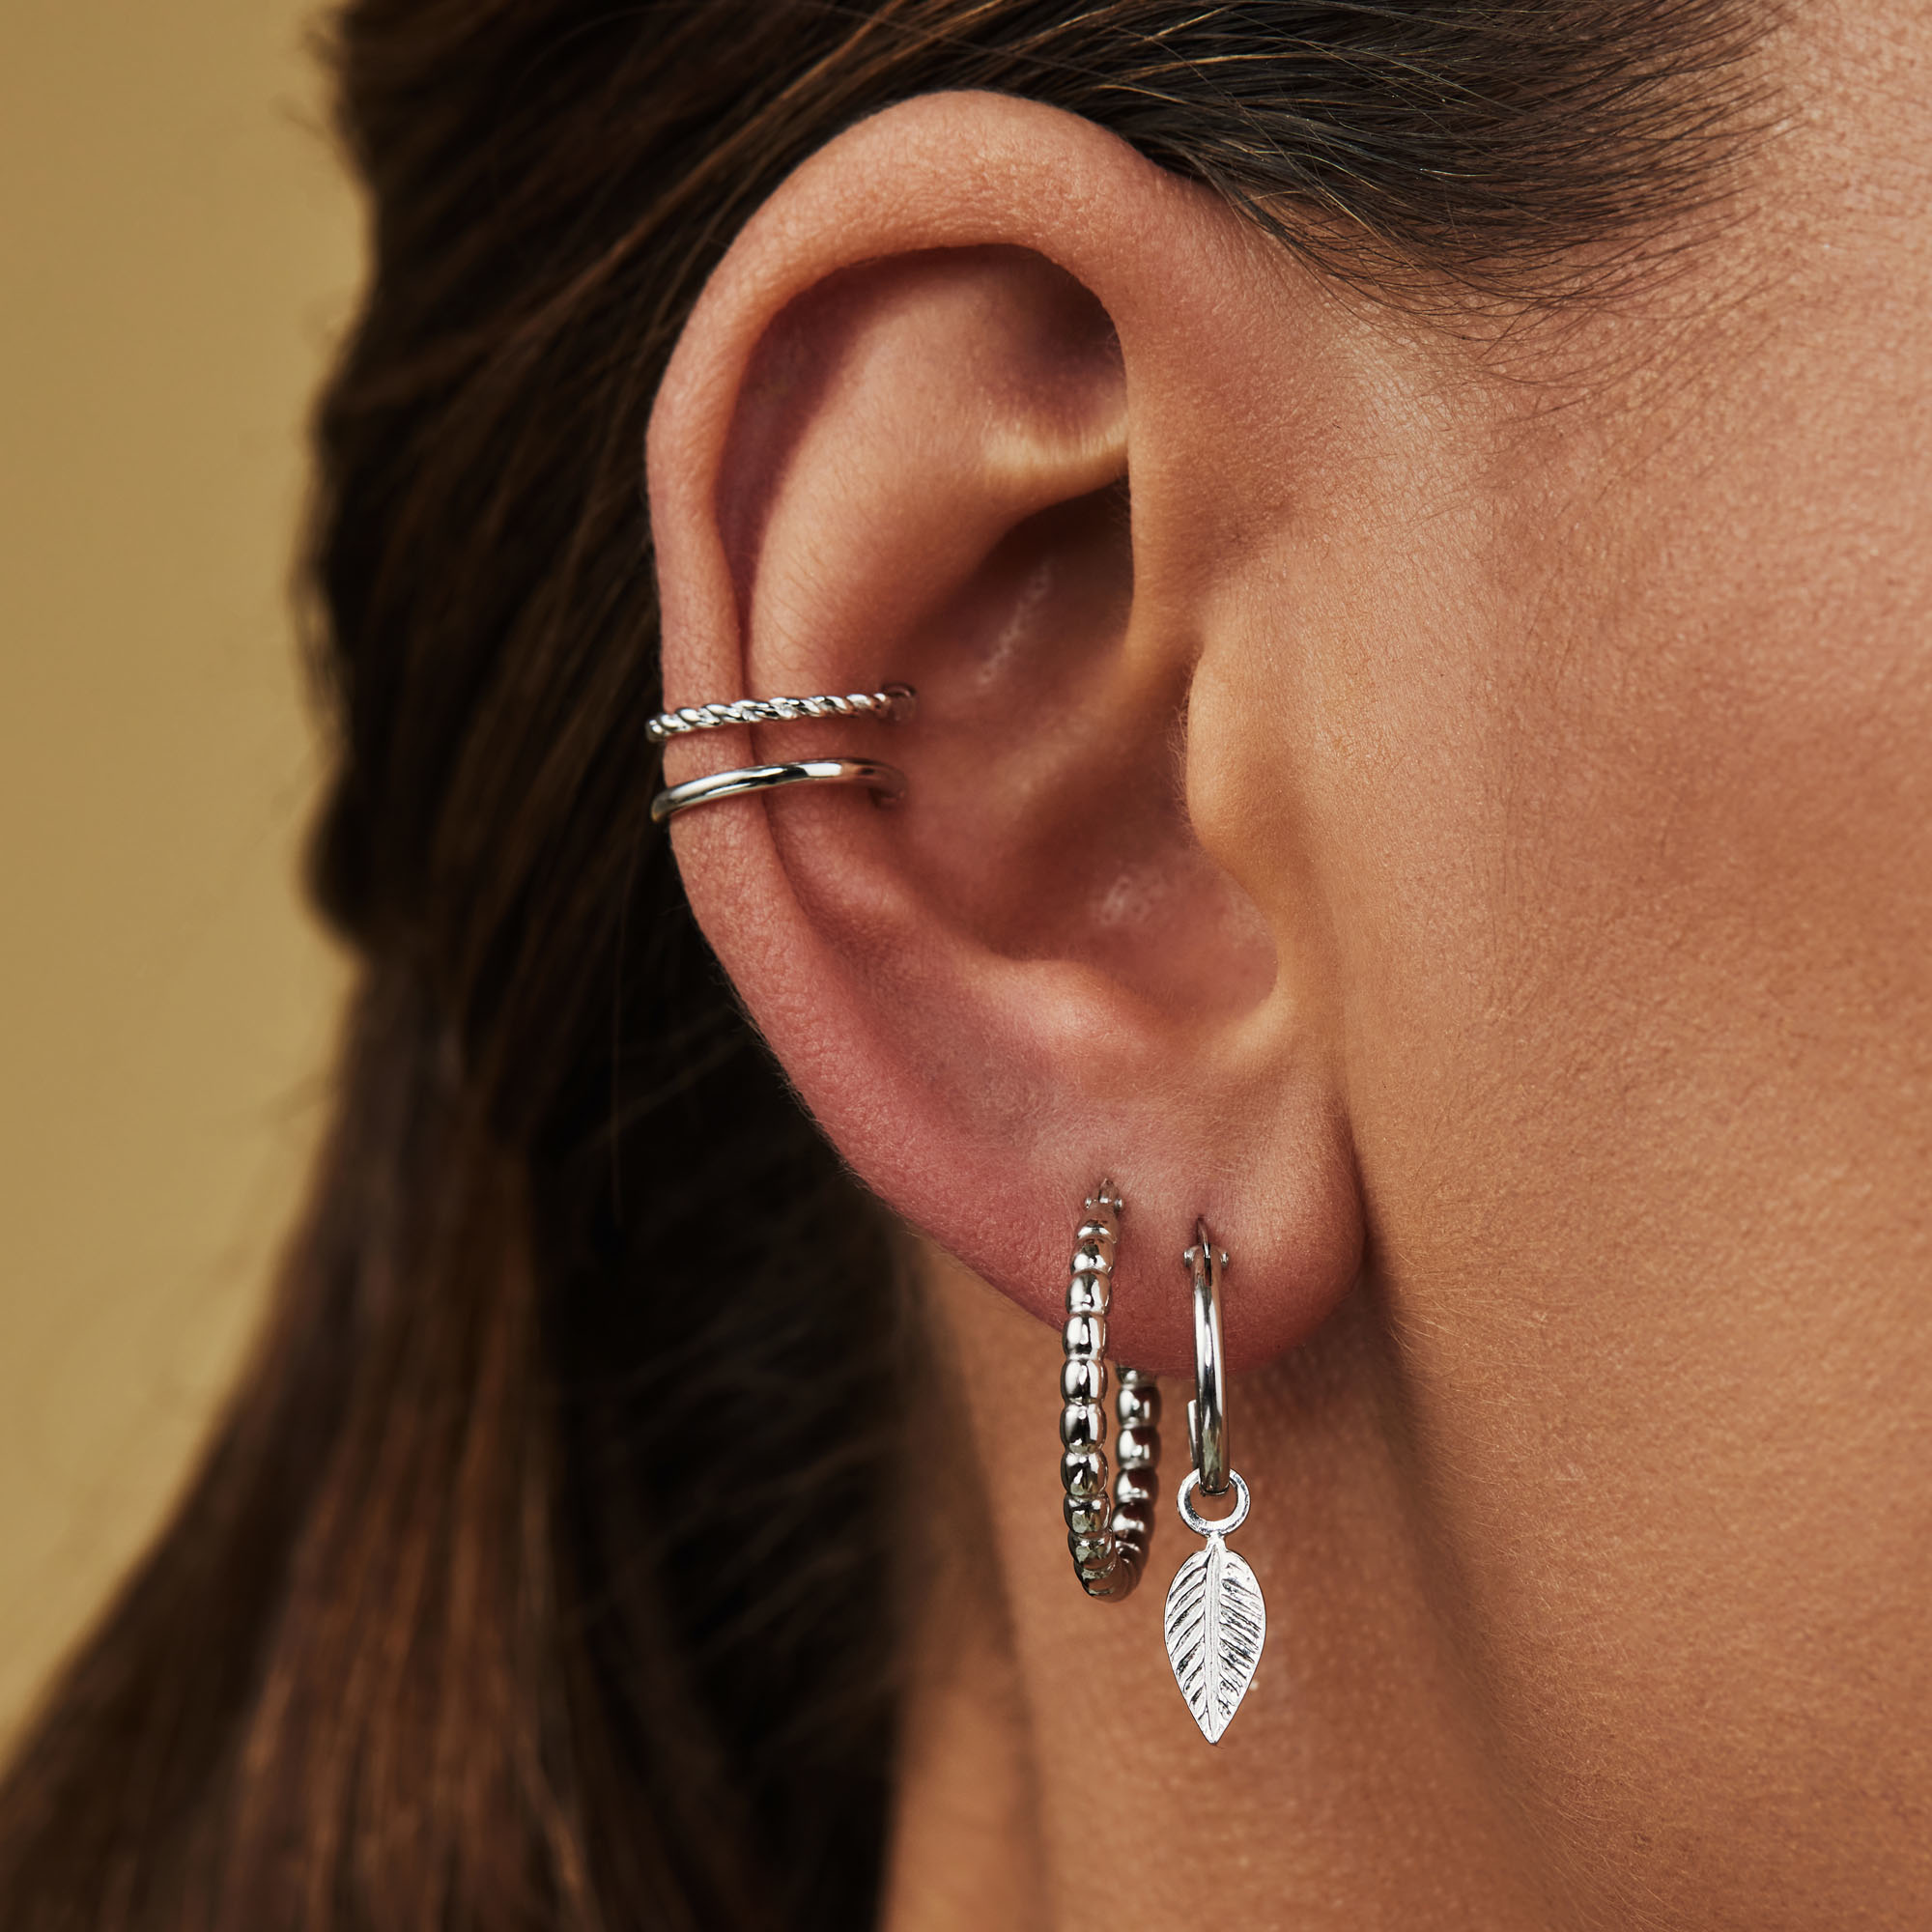 Selected Jewels Julie Lucie 925 sterling silver creoles with feathers